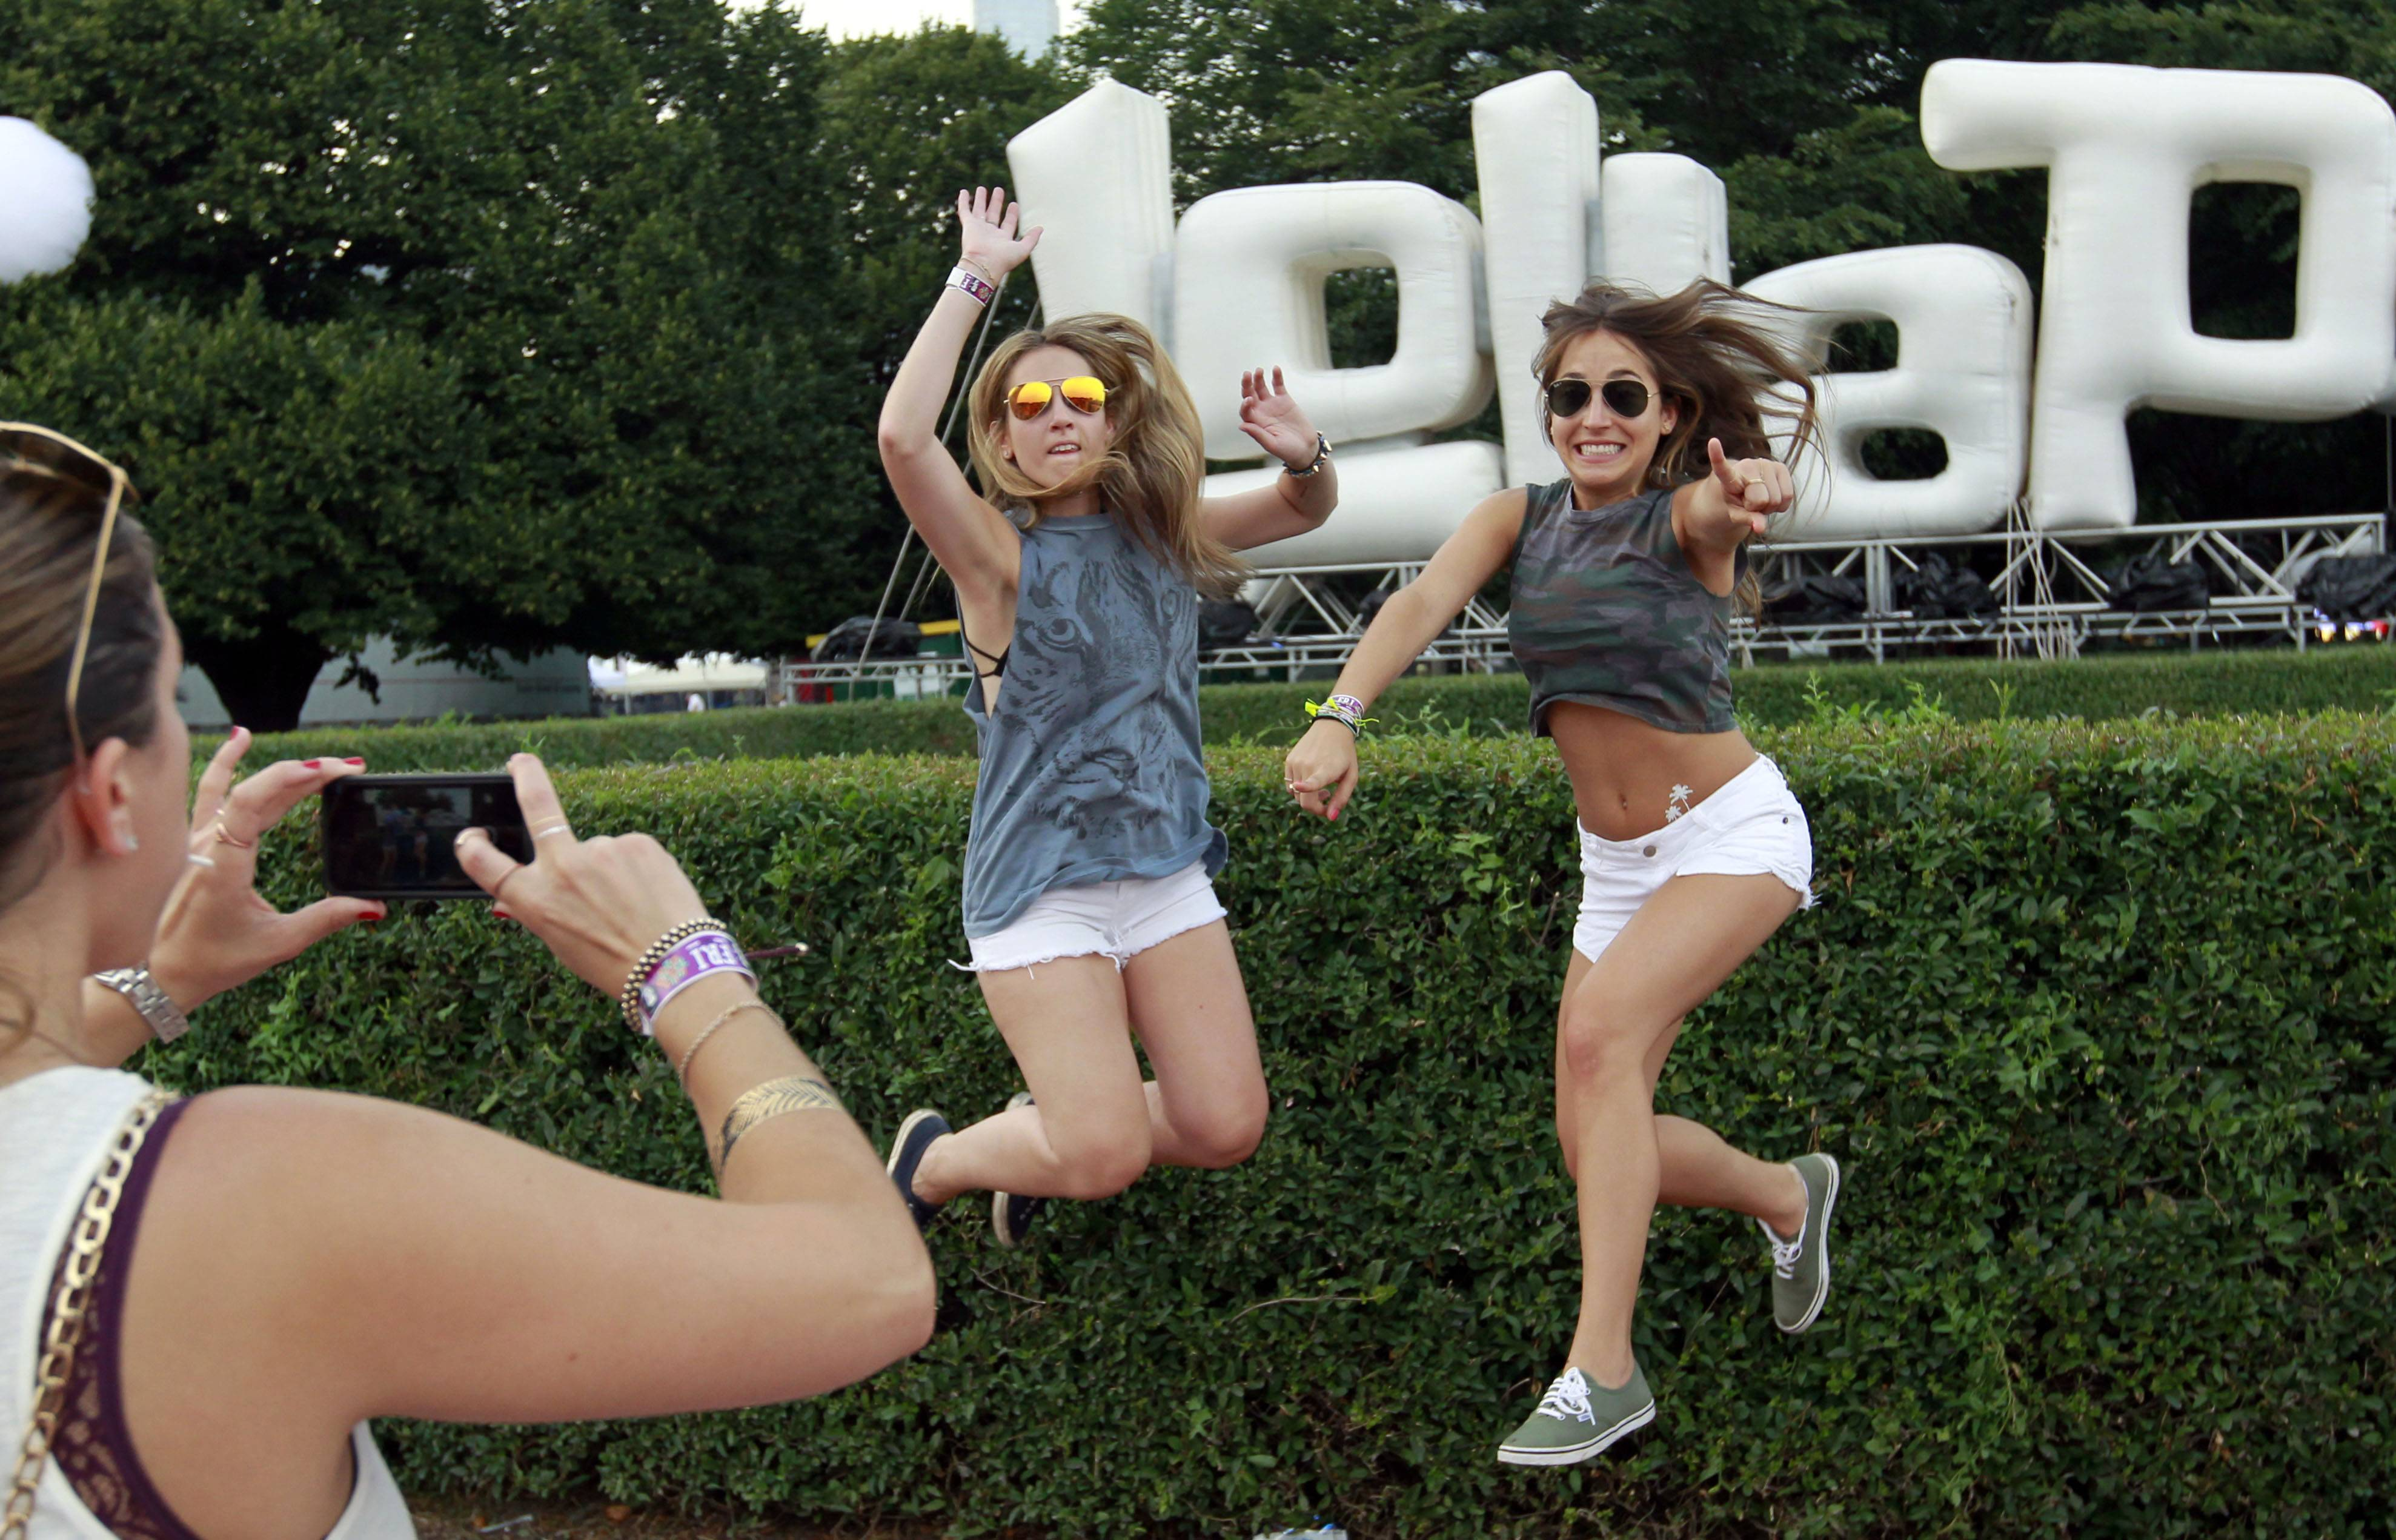 Fans pose for photos during Lollapalooza on Friday in Chicago. Once the vagabond of the music festival and touring circuit, Lollapalooza marks its 10th anniversary in Chicago.